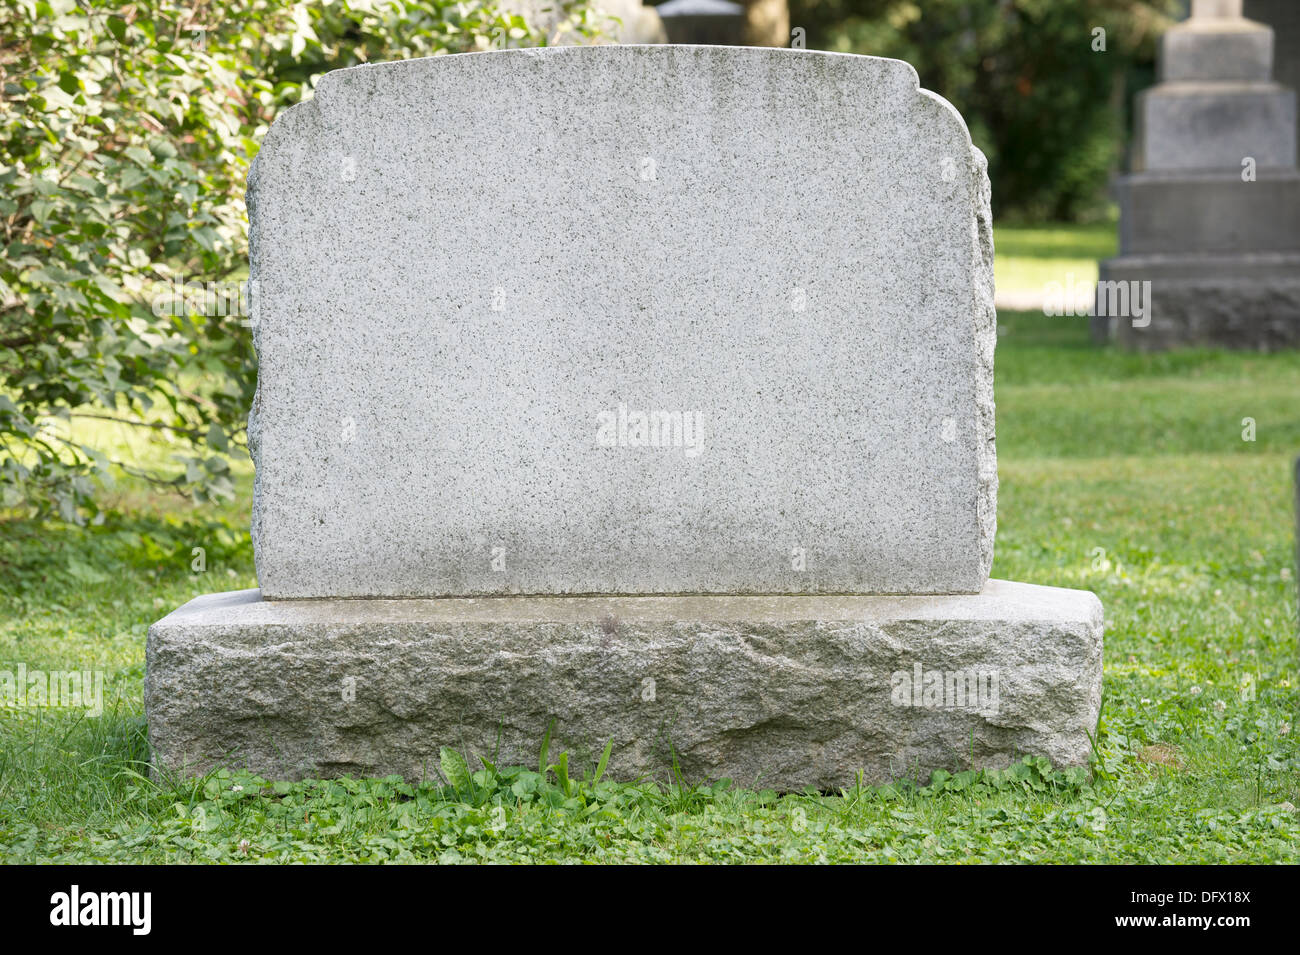 Blank headstone in cemetery Stock Photo: 61422730 - Alamy